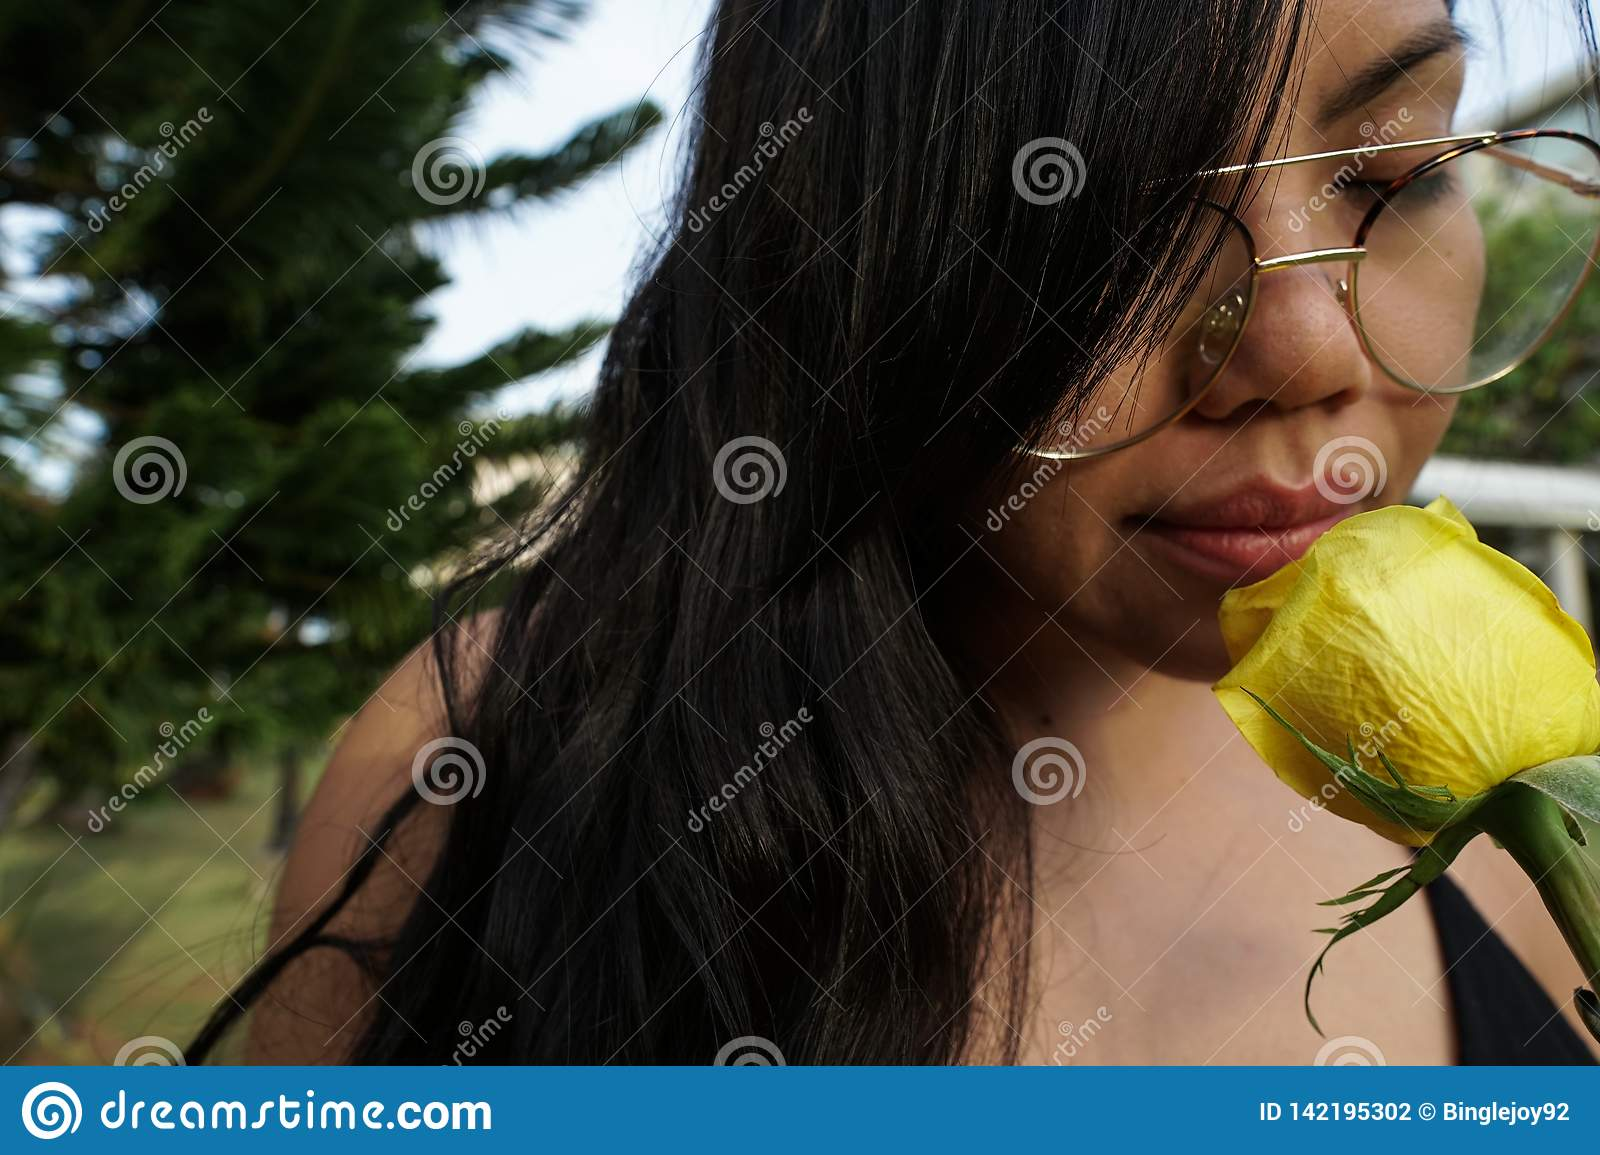 Close-up of girl with glasses, holding yellow rose flower.